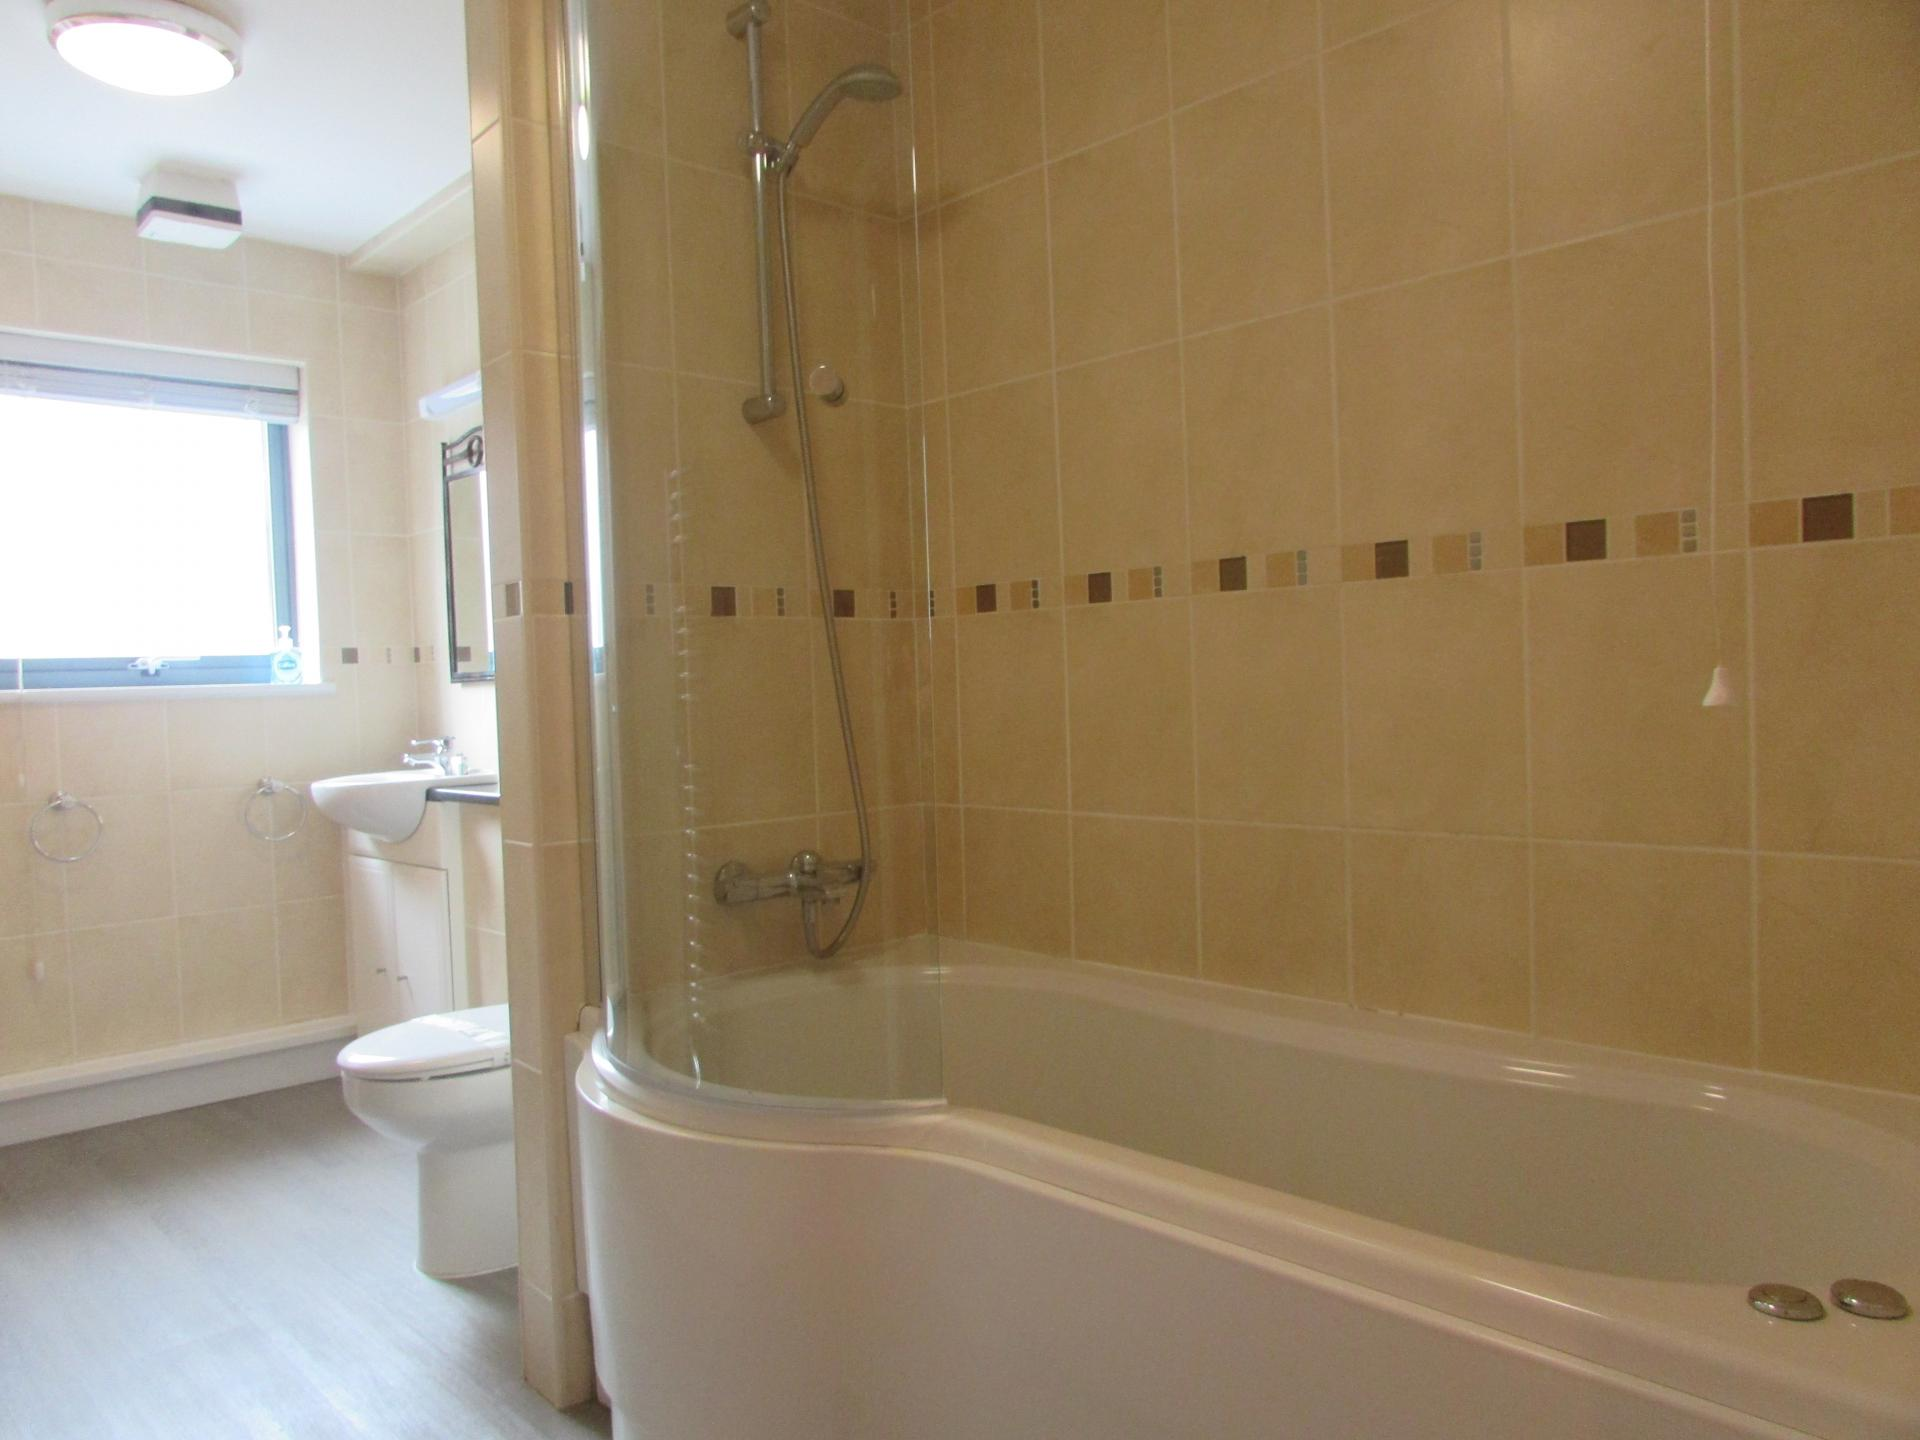 Bath at William Yard Apartment, Millbay, Plymouth